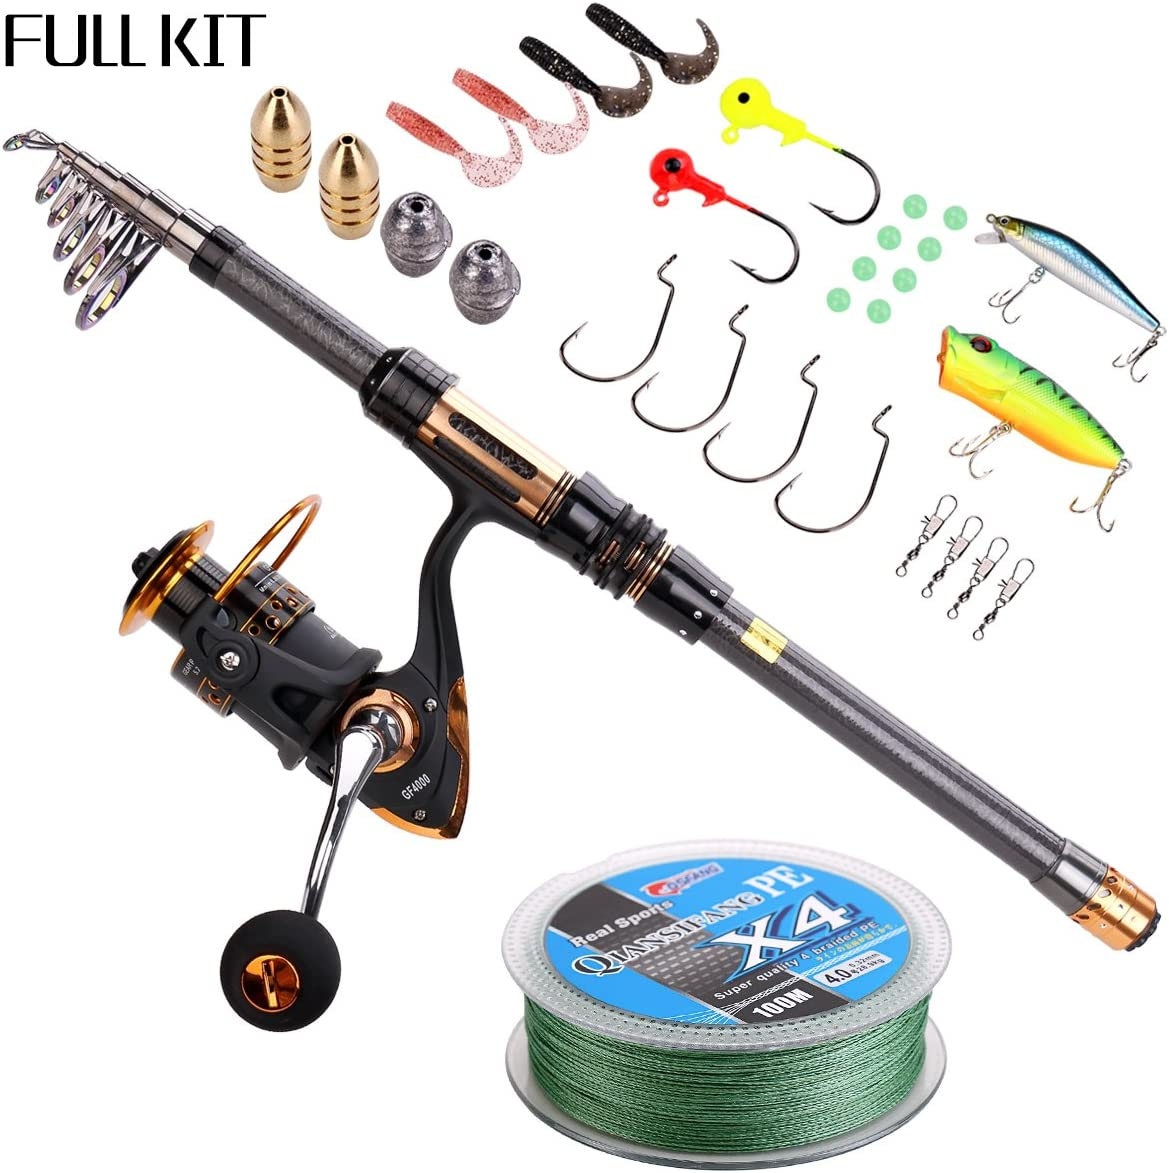 Supertrip TM Spin Spinning Fishing Rod and Reel Combos Full Kit Carbon Telescopic Fishing Rod with Reel Line Lures Hooks and Accessories Fishing Gear